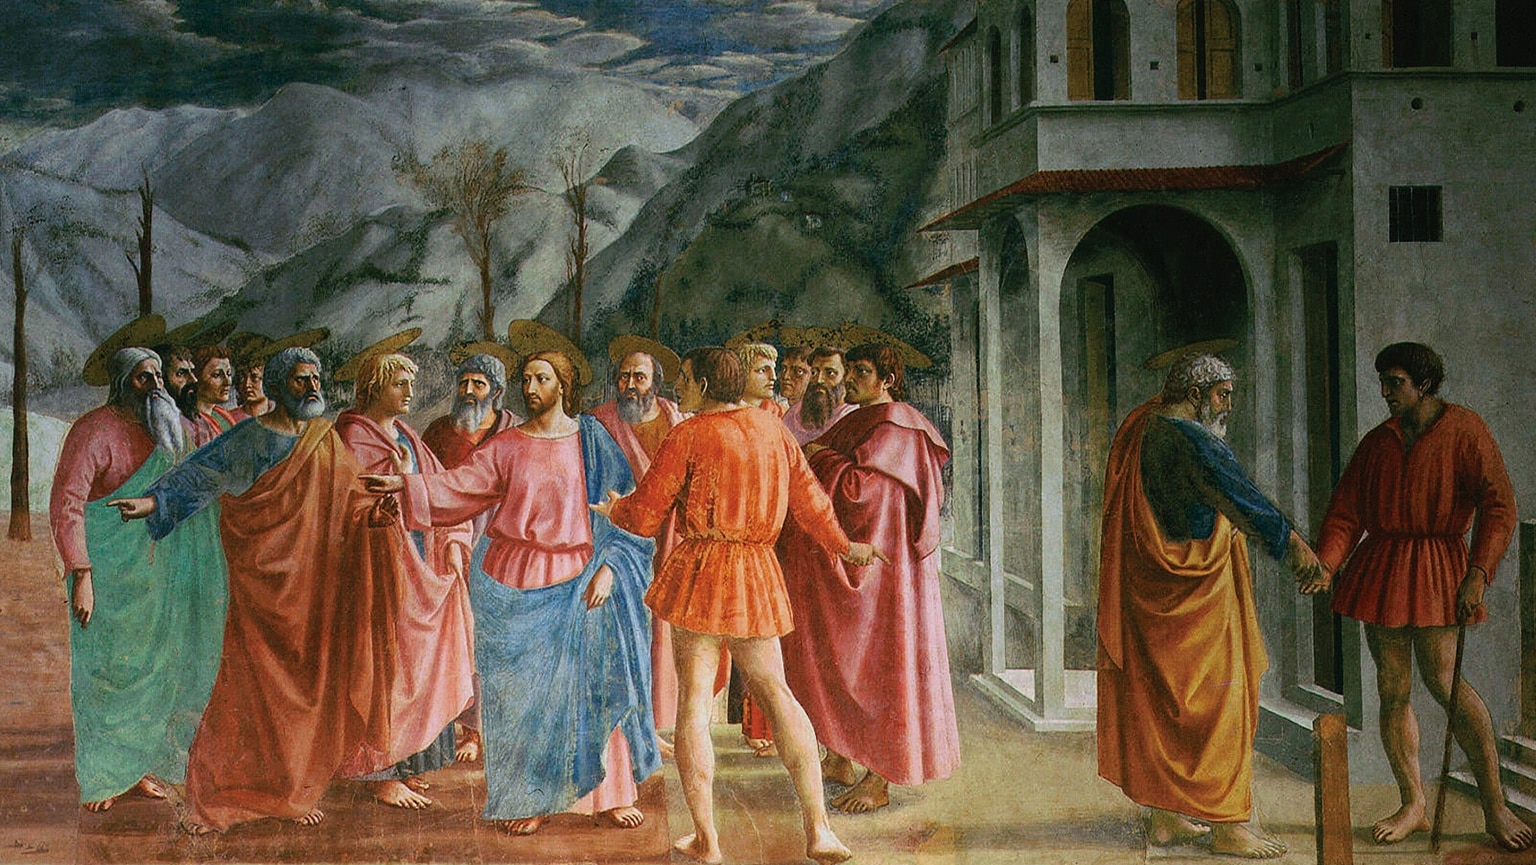 Masaccio—The Brancacci Chapel